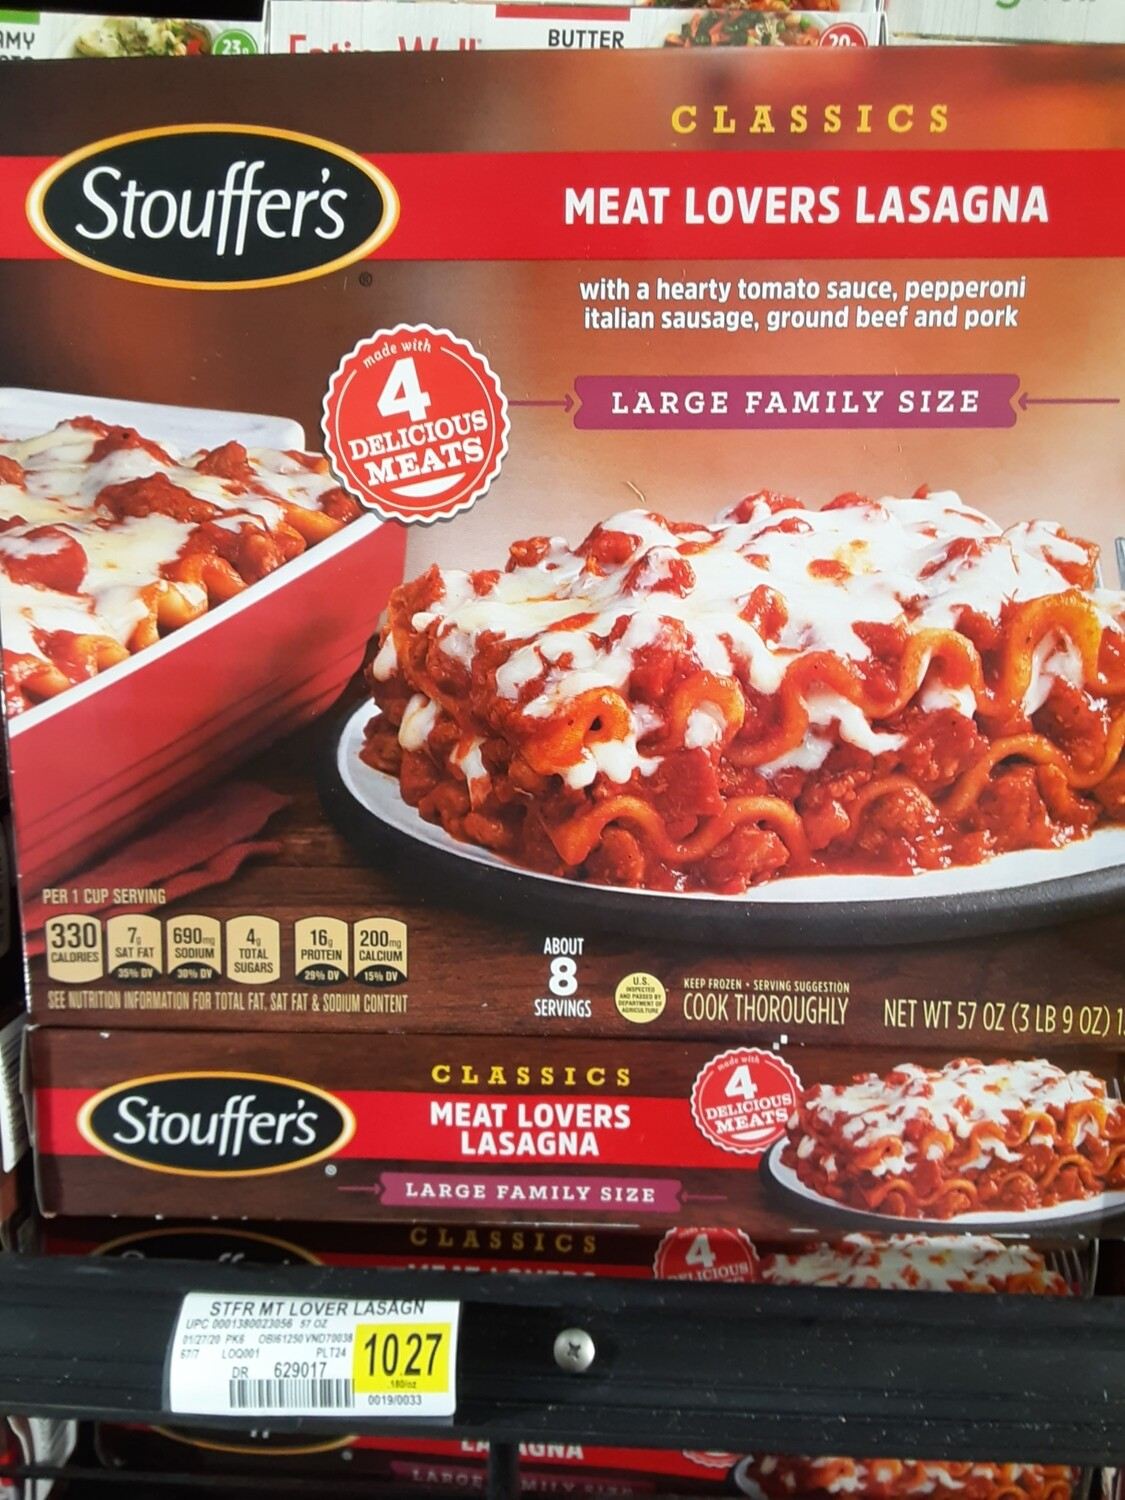 Cash Saver: Stouffer's Meat Lovers Lasagna Large Family Size